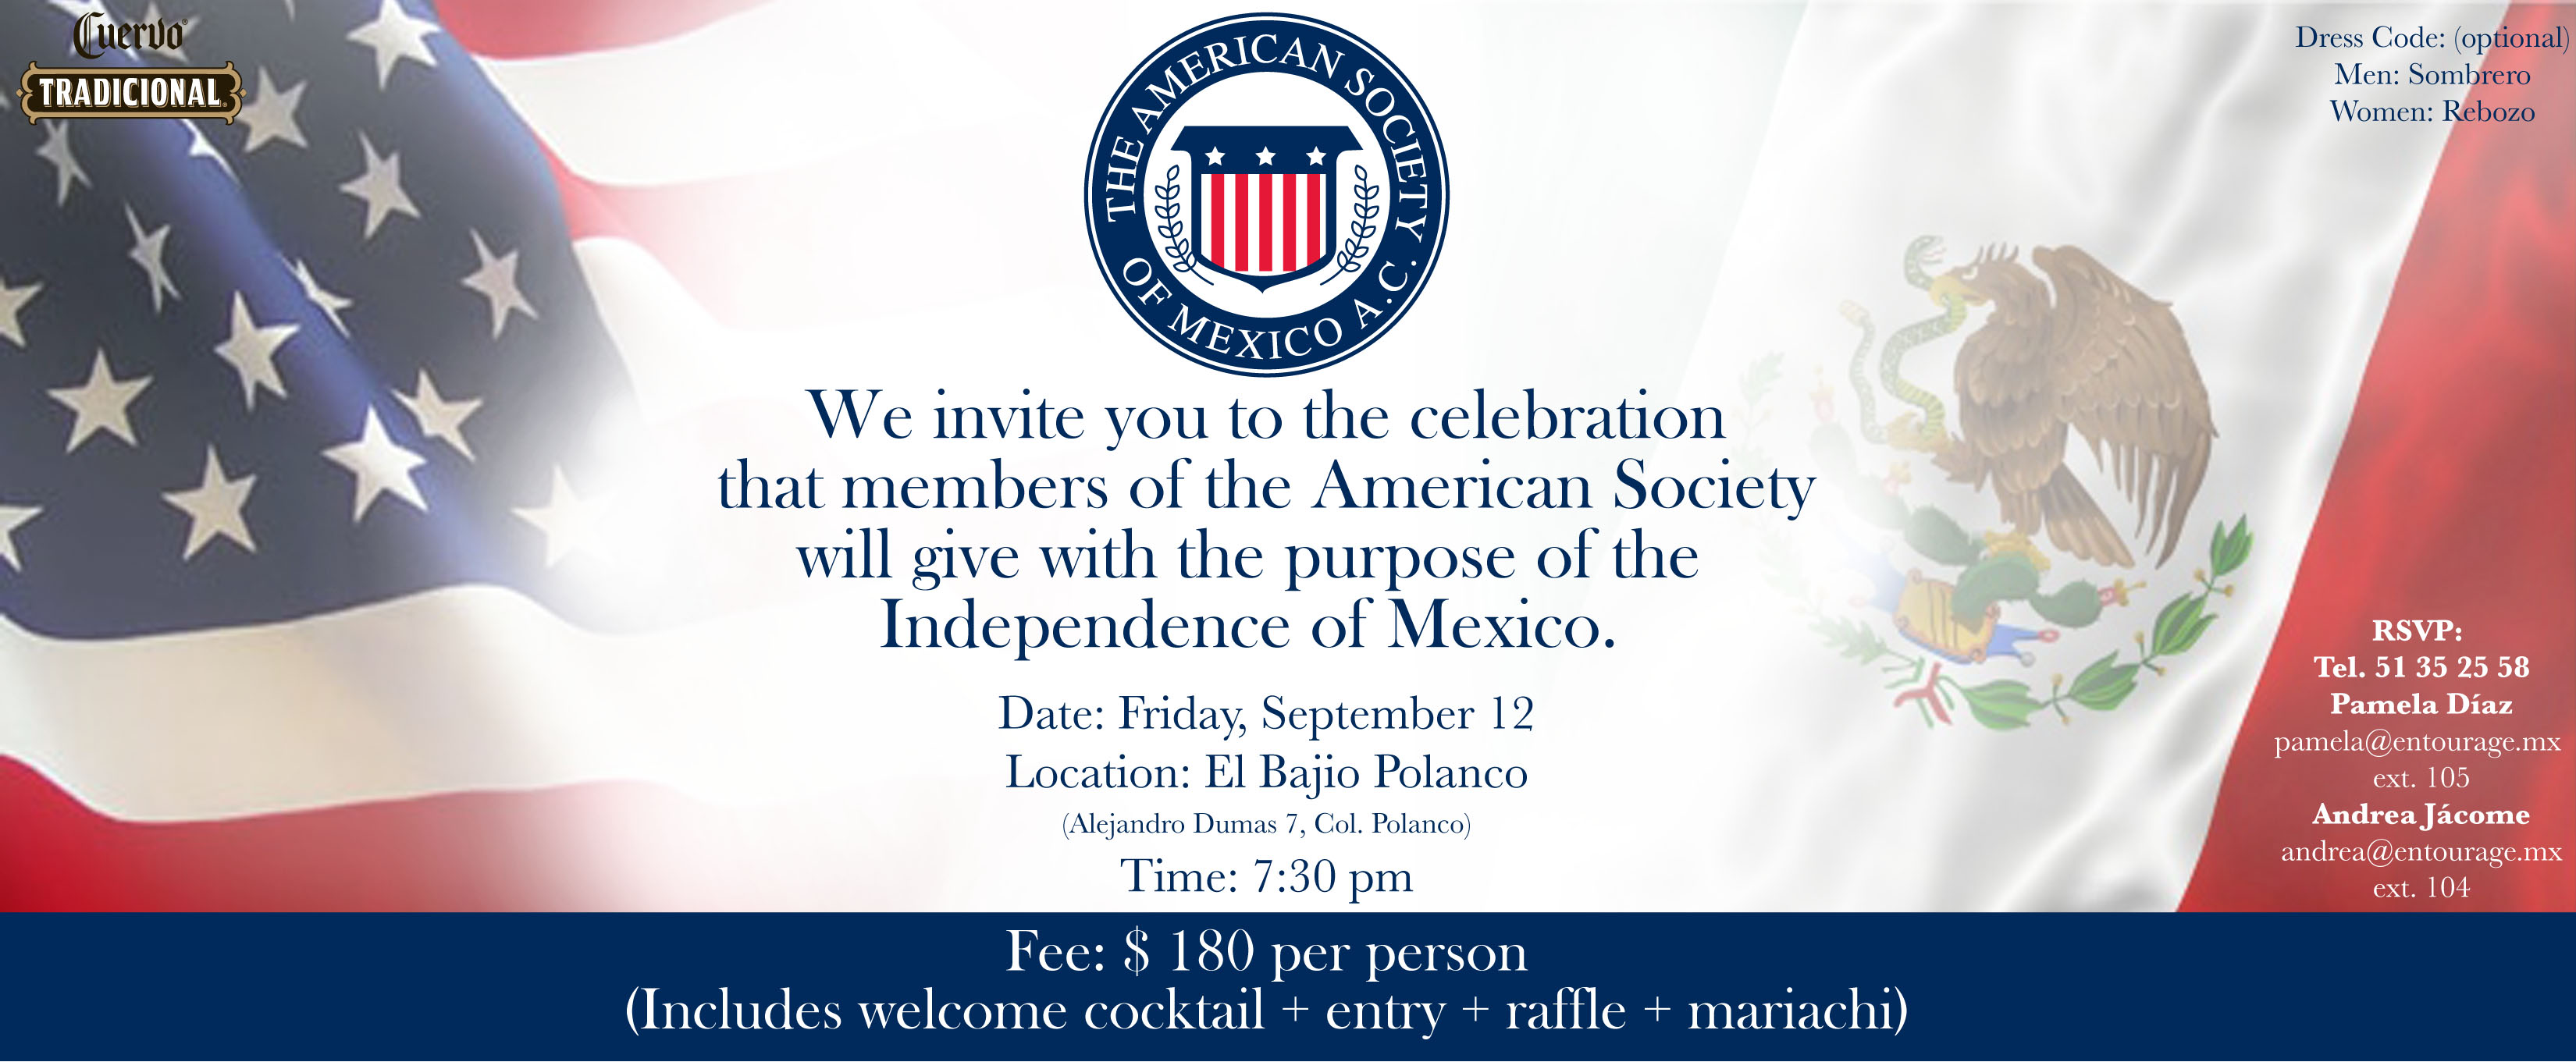 Ingles-_Invitacion_15_de_Sept_AMSOC.jpg